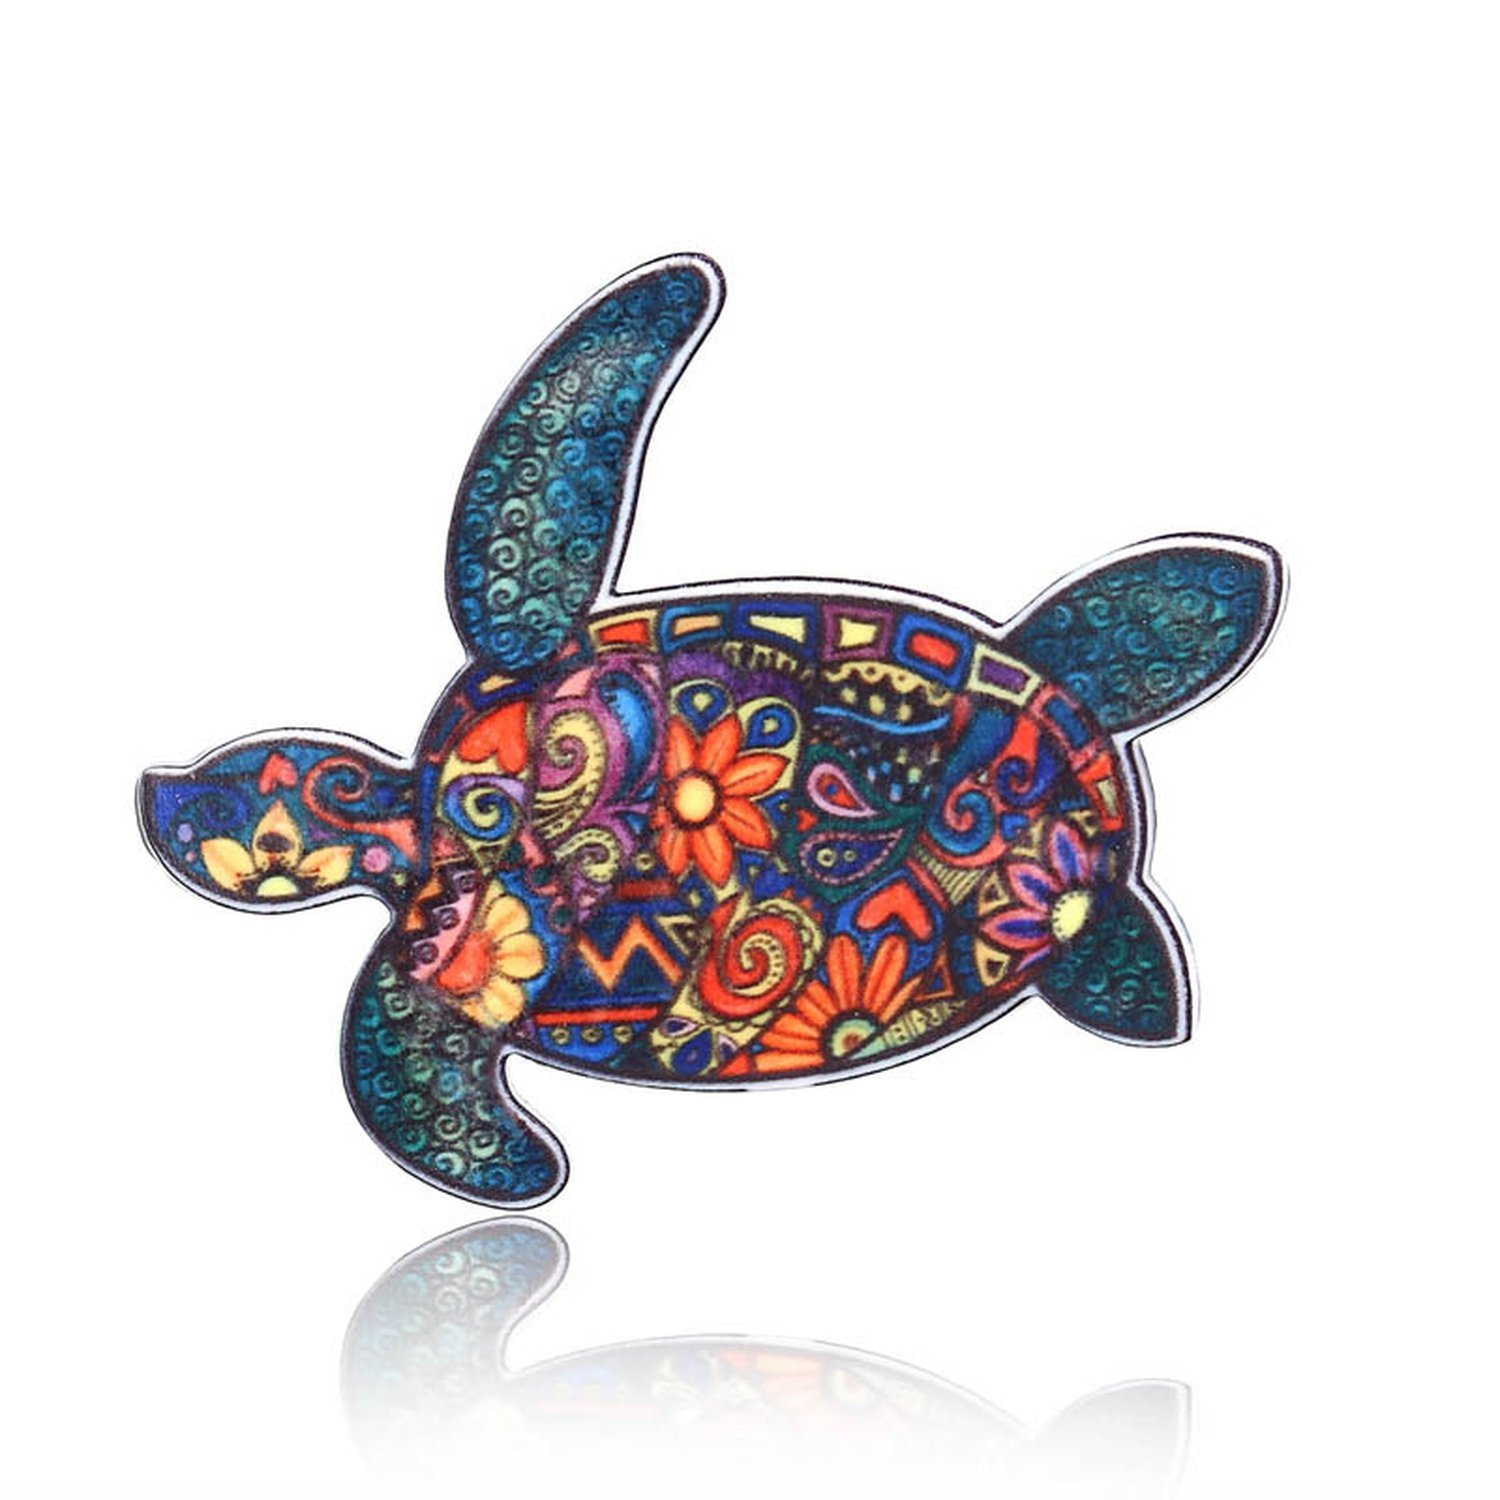 Animal Elephant Cat Brooch Dog Horse Bird Brooch Pin Badges Dress Coat Jewelry,Tortoise